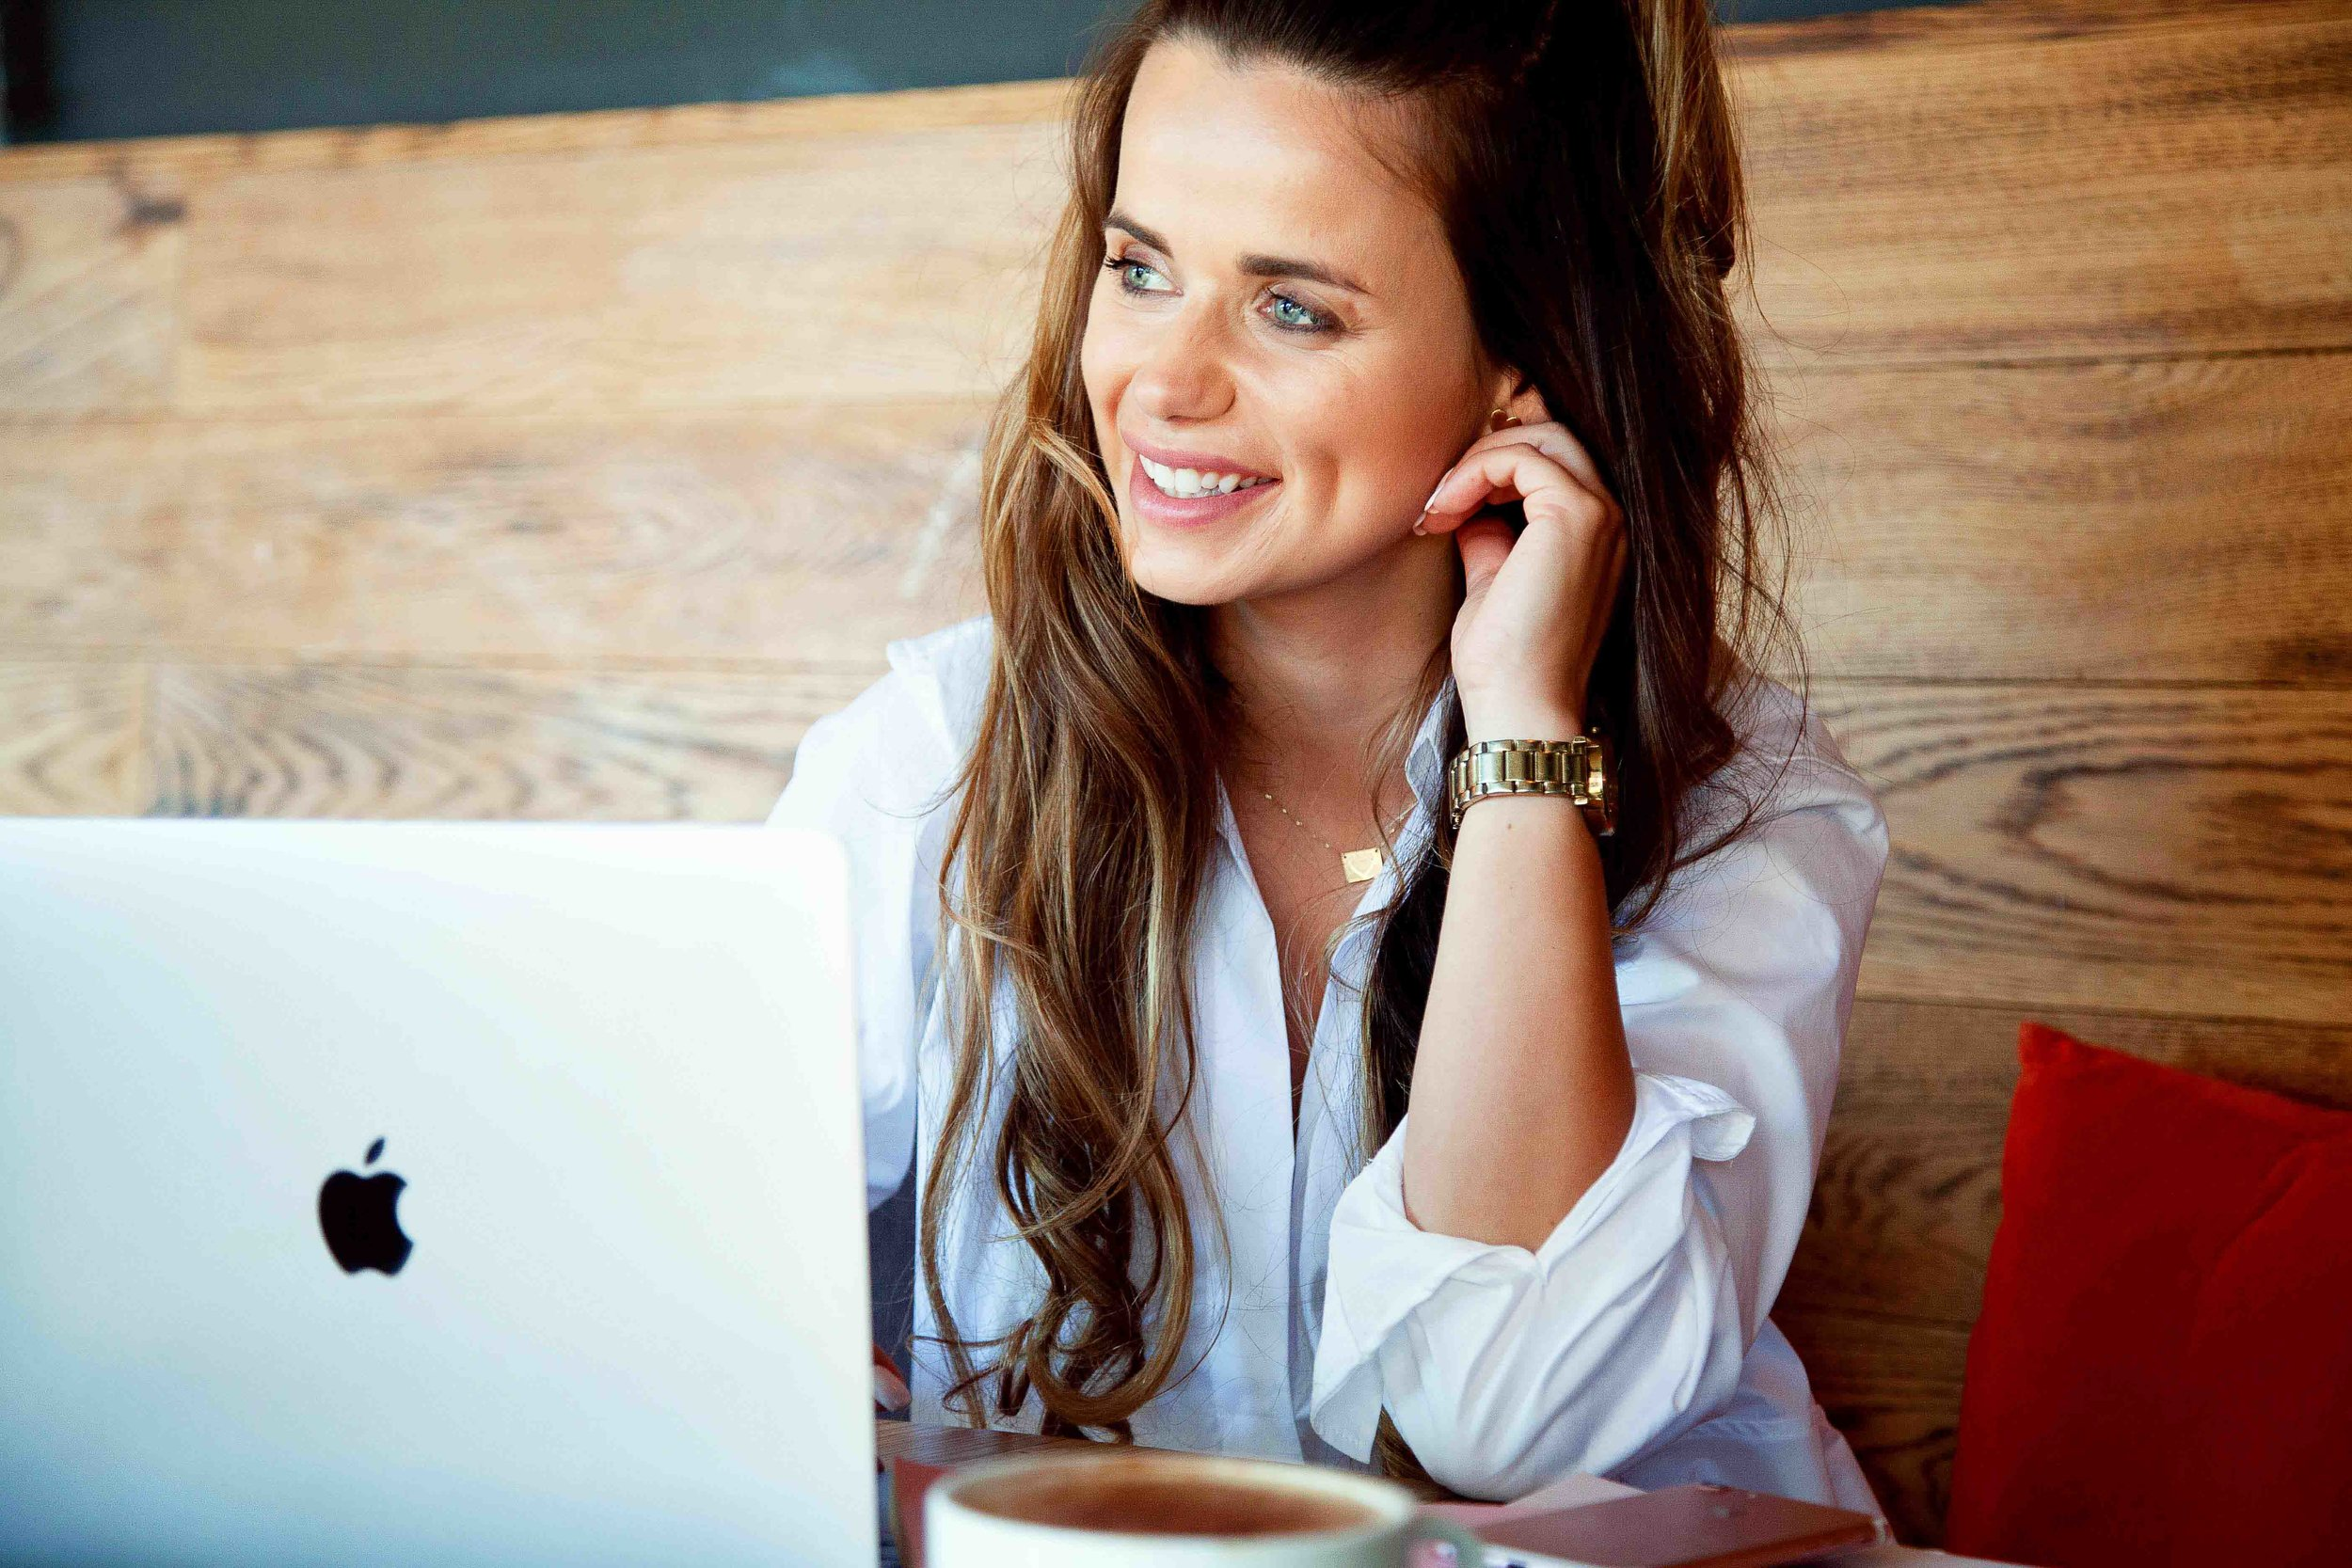 Online Plans - Available WorldwidePlan for success! Following a personalised and detailed plan aligned with your goals and preferences will help you stay on track and succeed on your quest to lifestyle transformation - get started today!